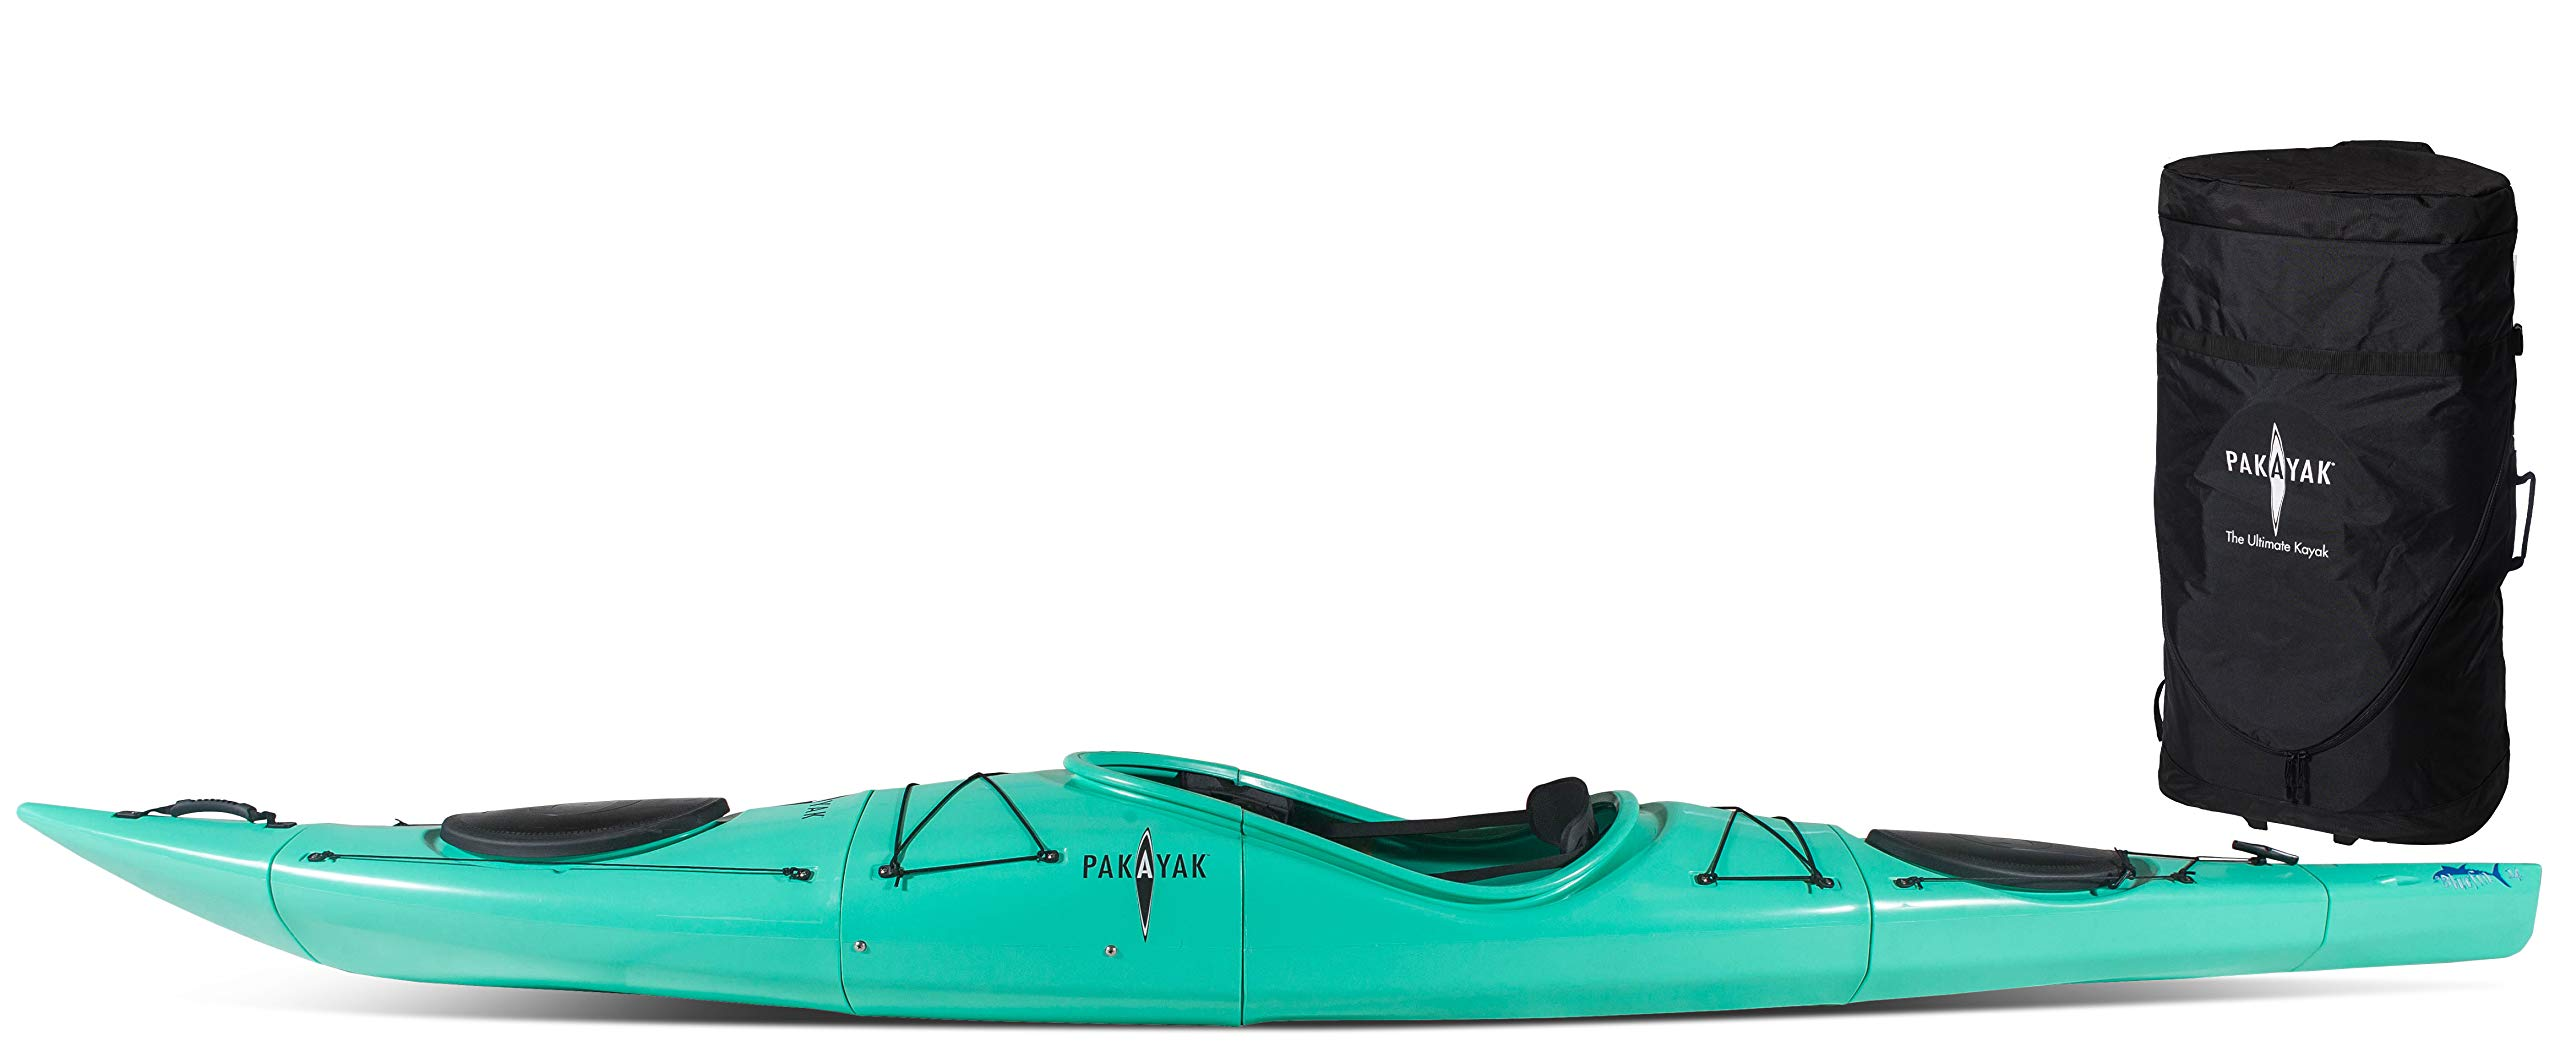 Pakayak Bluefin 14 Ft Kayak, The Only Hardshell Packable Kayak - Packs Down into Included Rolling Bag That Fits Inside of Your Trunk! Nests into Itself for Ultimate Portability and Storage!